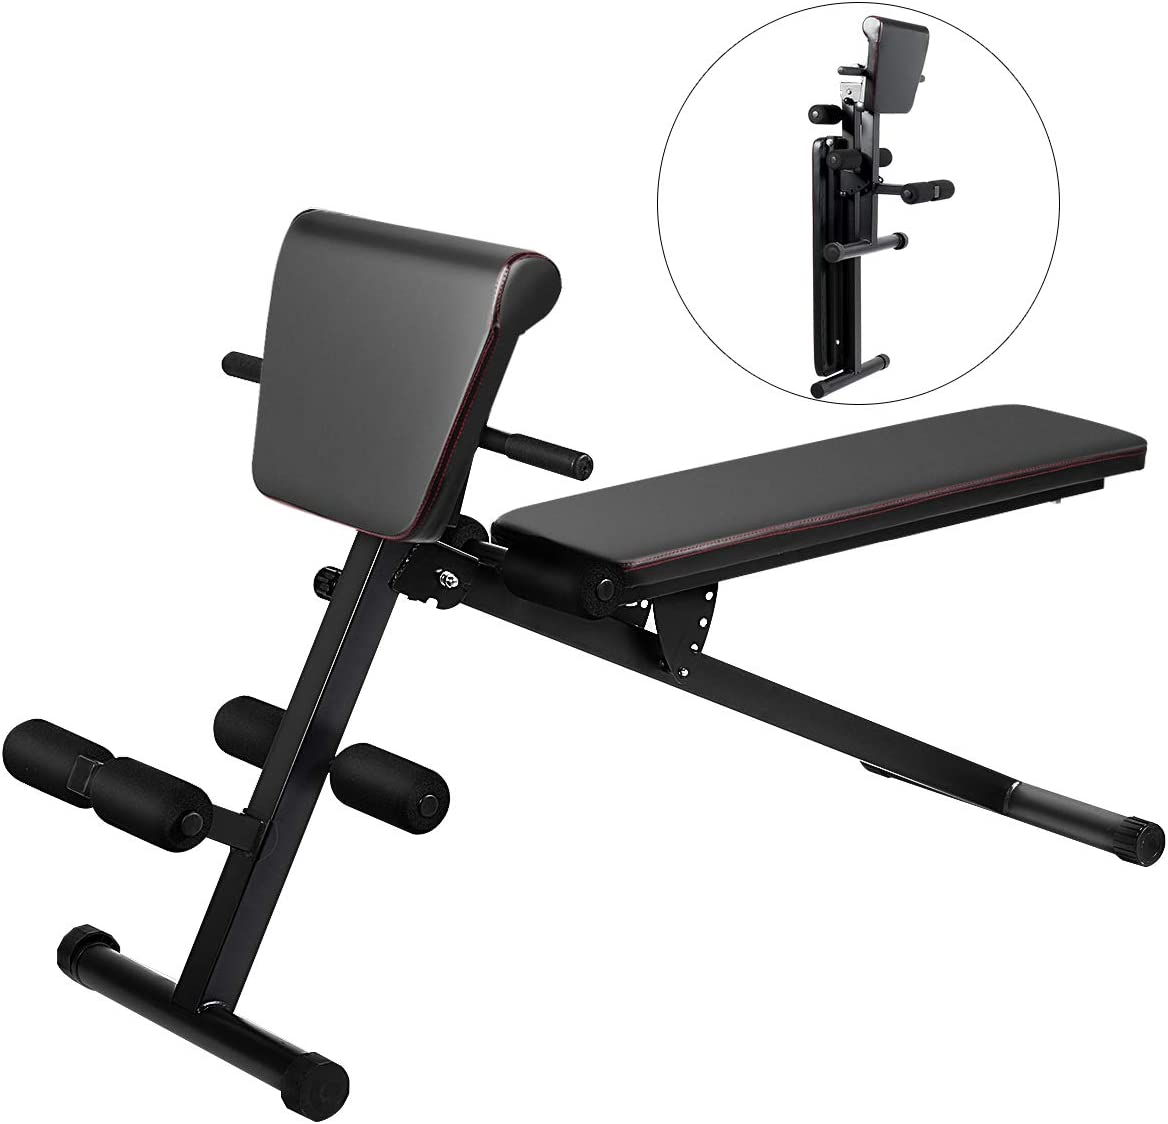 Goplus Multifunctional Weight Bench, Foldable Exercise Bench with Adjustable Positions, for Strength Training Core Workout Training Leg Exercise Sit Up Push Up